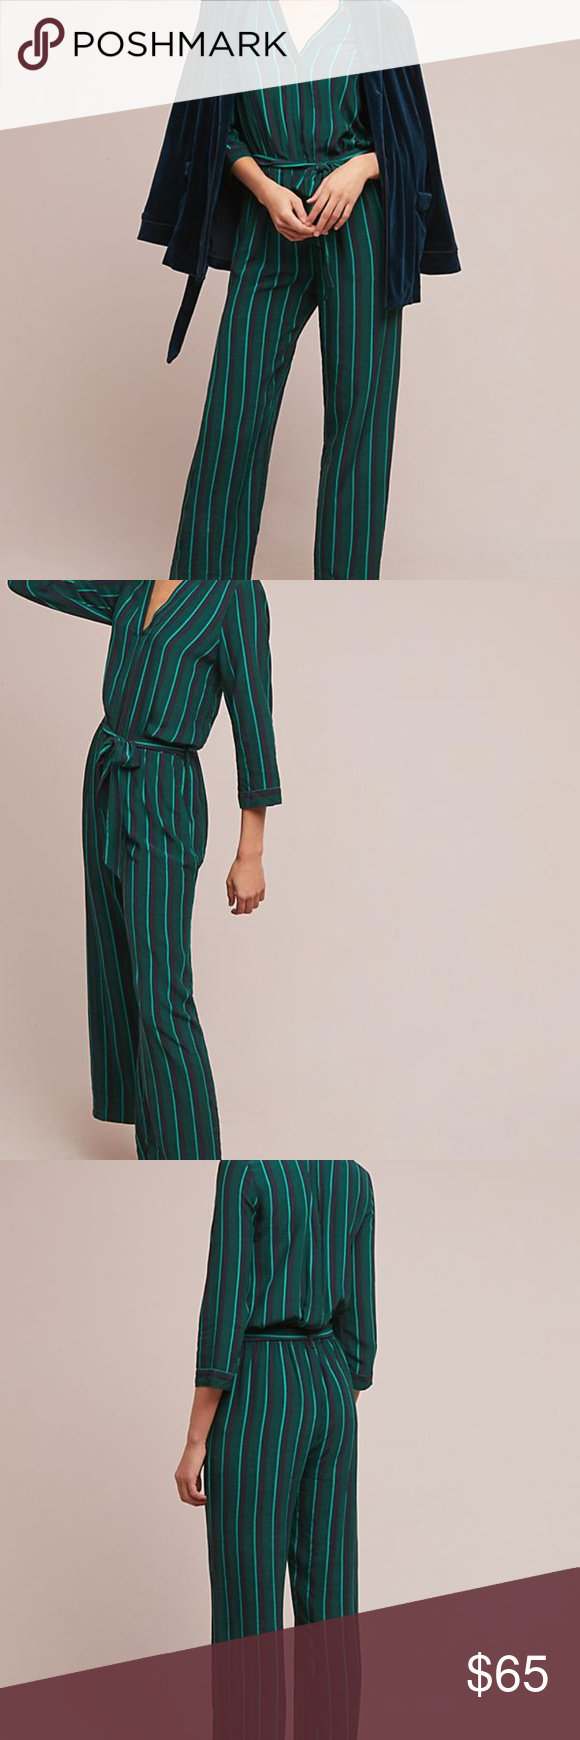 c00cedf4ef71 Anthropologie Fina Striped Jumpsuit Striped in contrasting hues of green  and navy